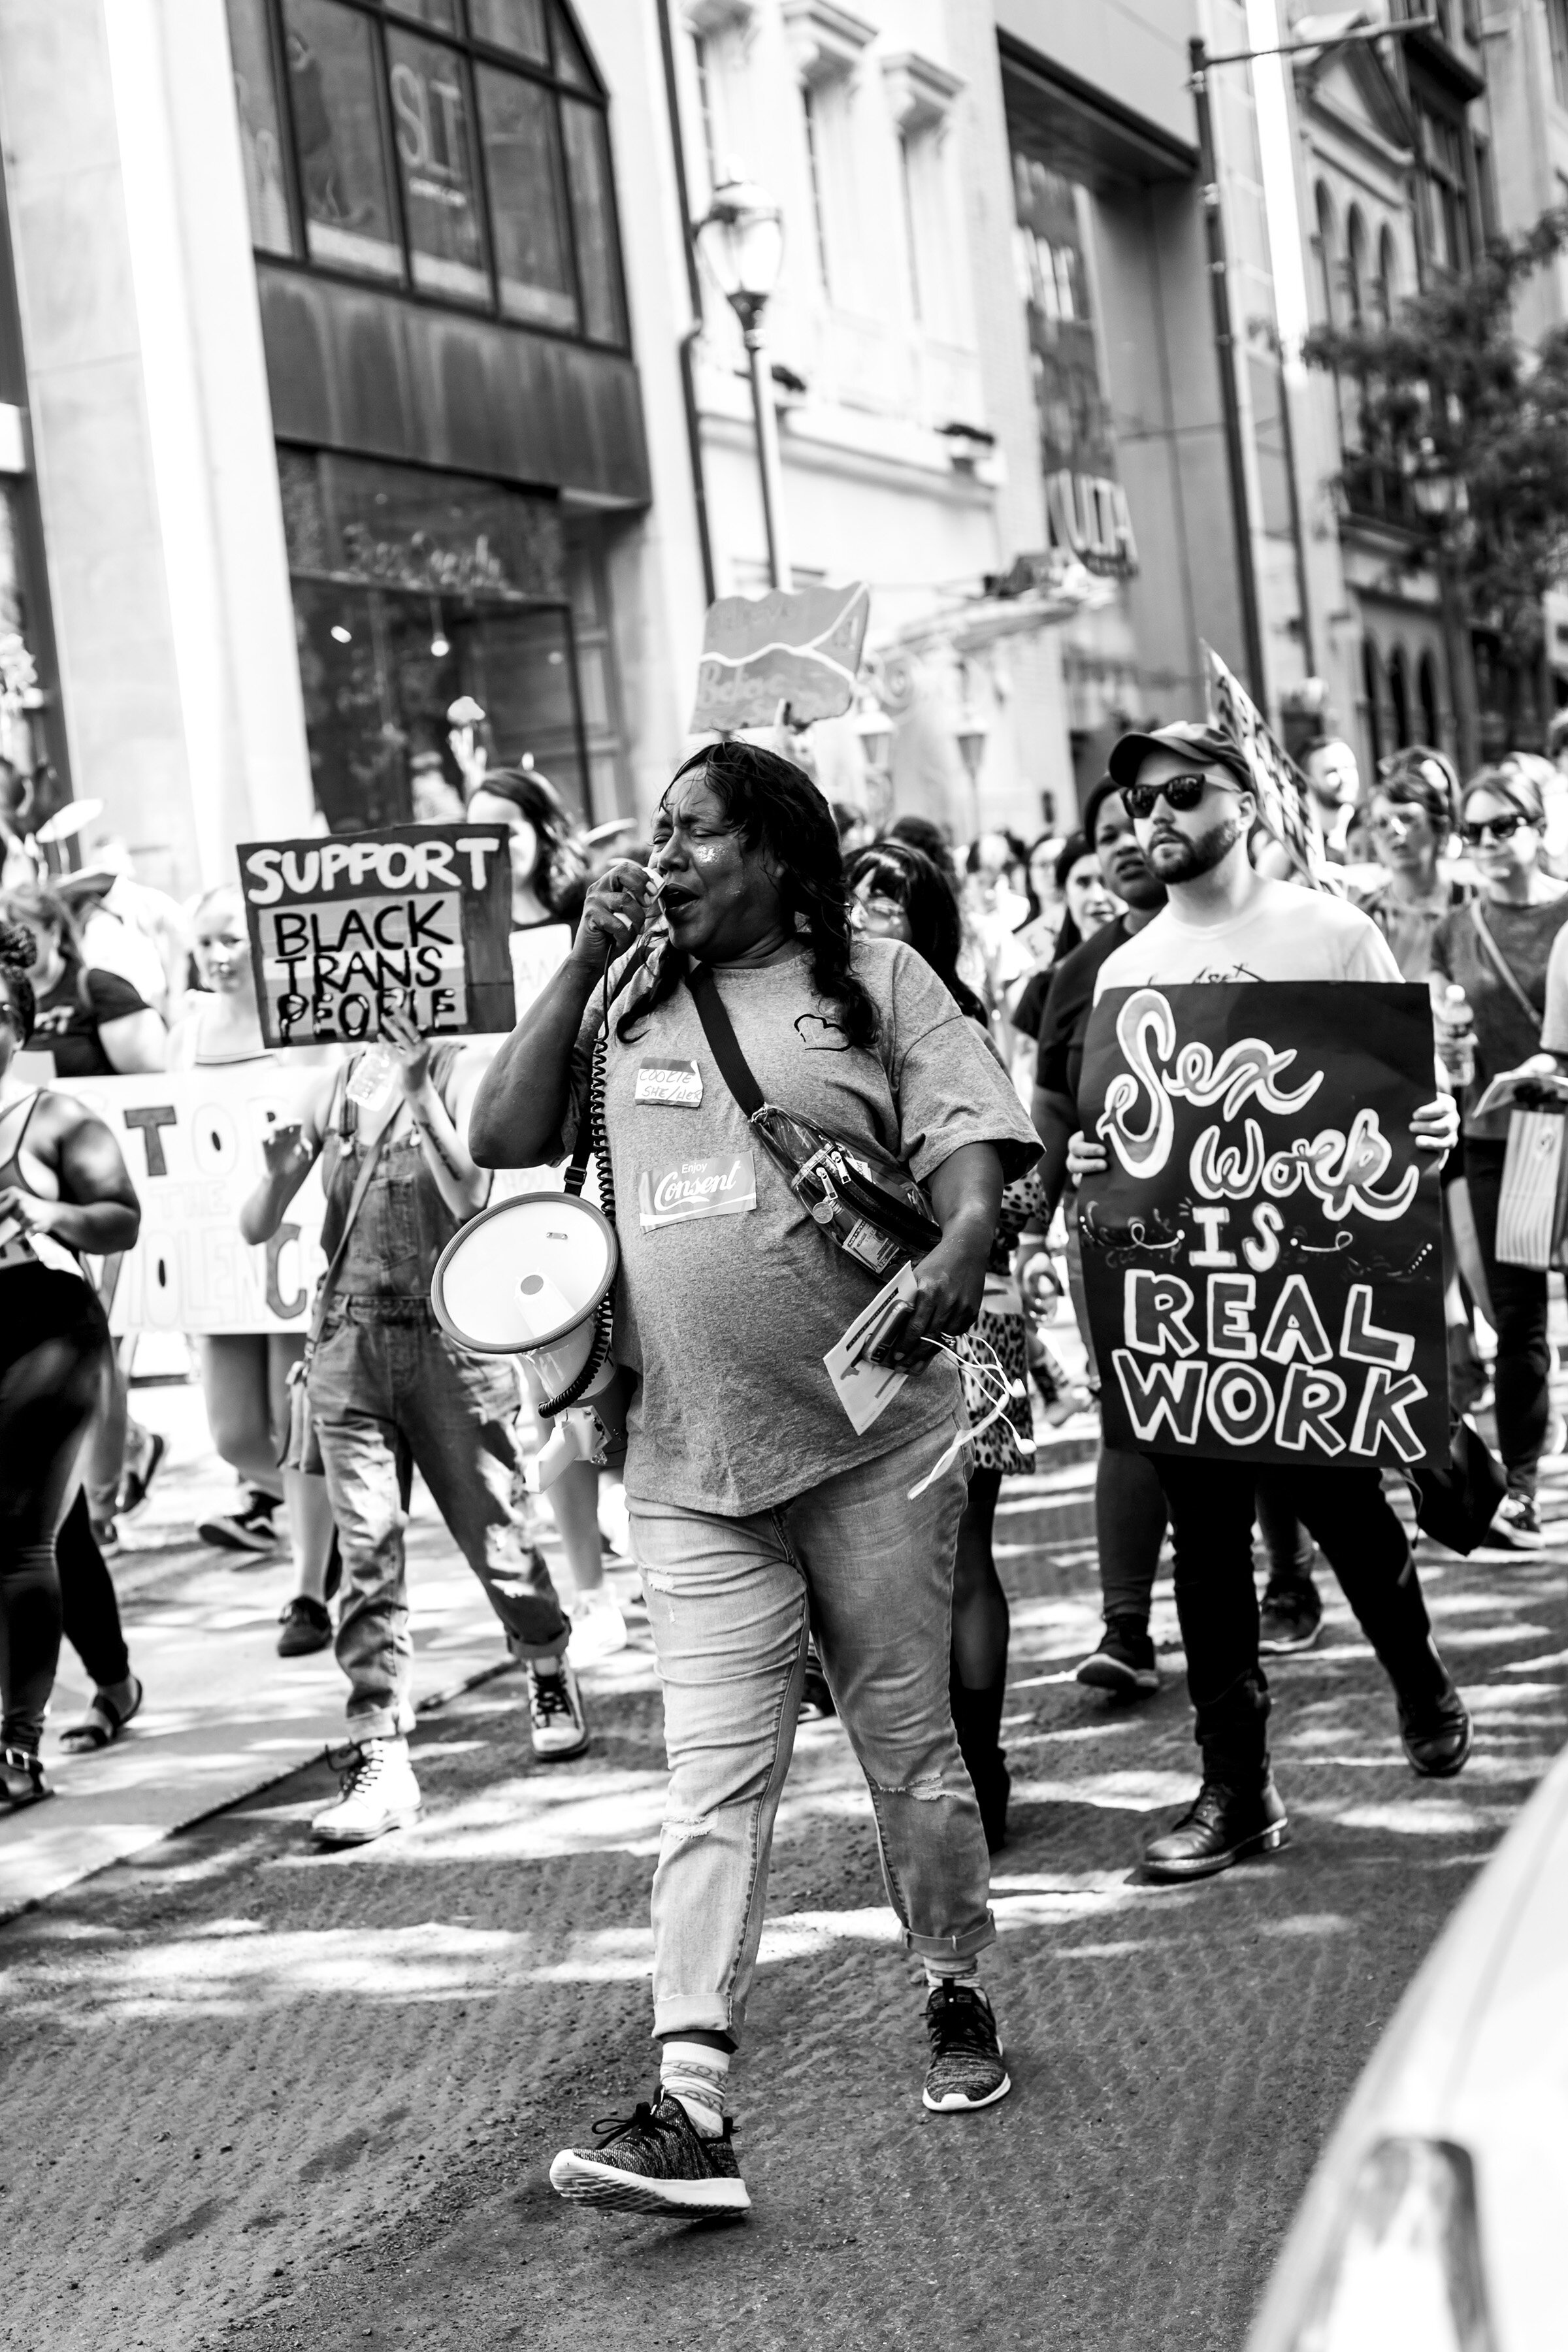 MarchToEndRapeCulture_2019_MikeArrison_BW_092919_0091.jpg